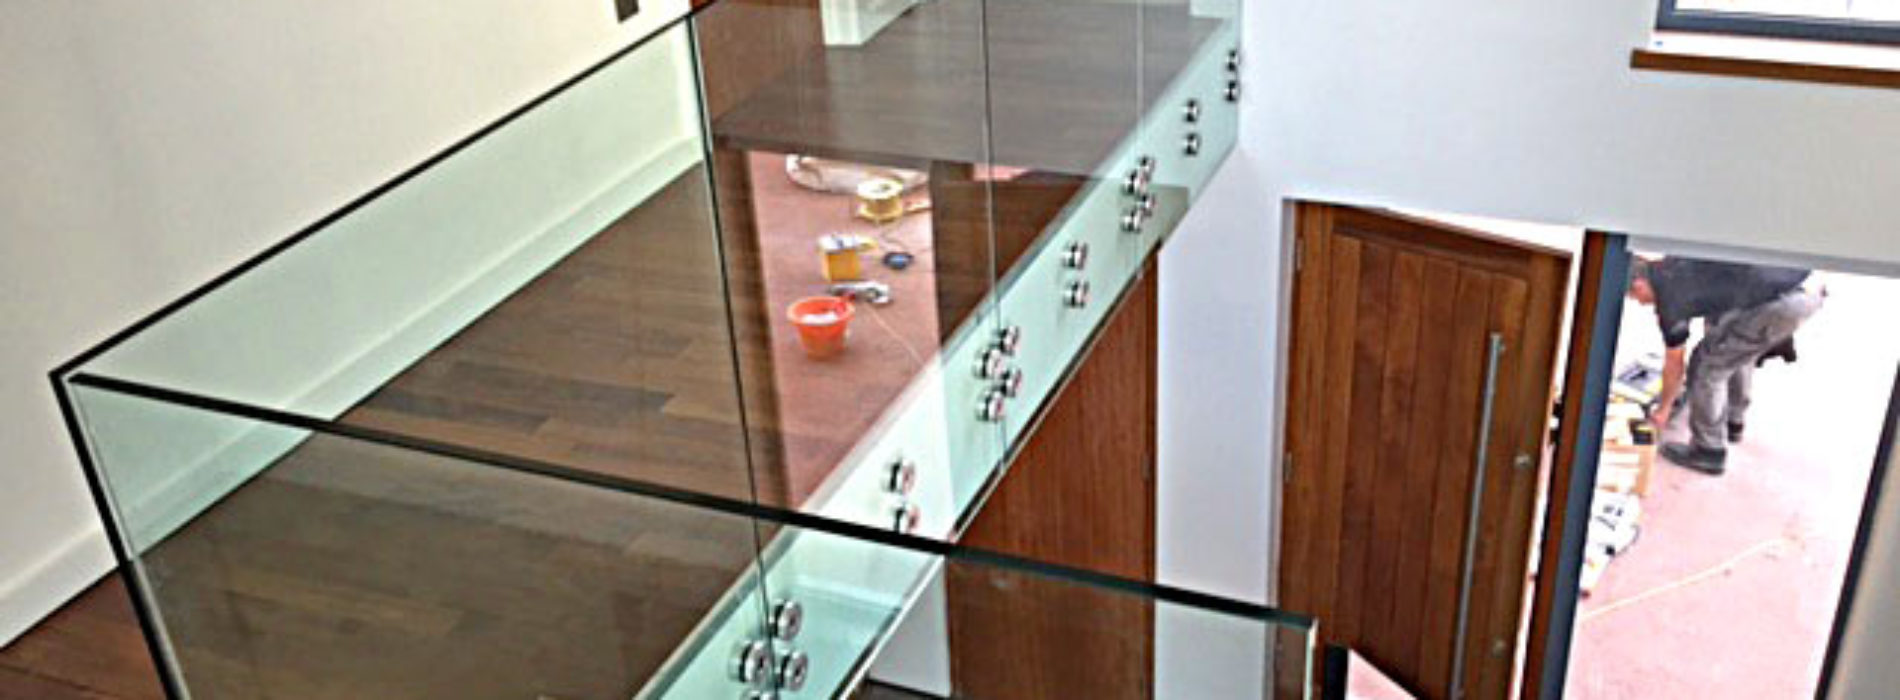 Glass vs Stainless Steel Balustrades: Which one is Better